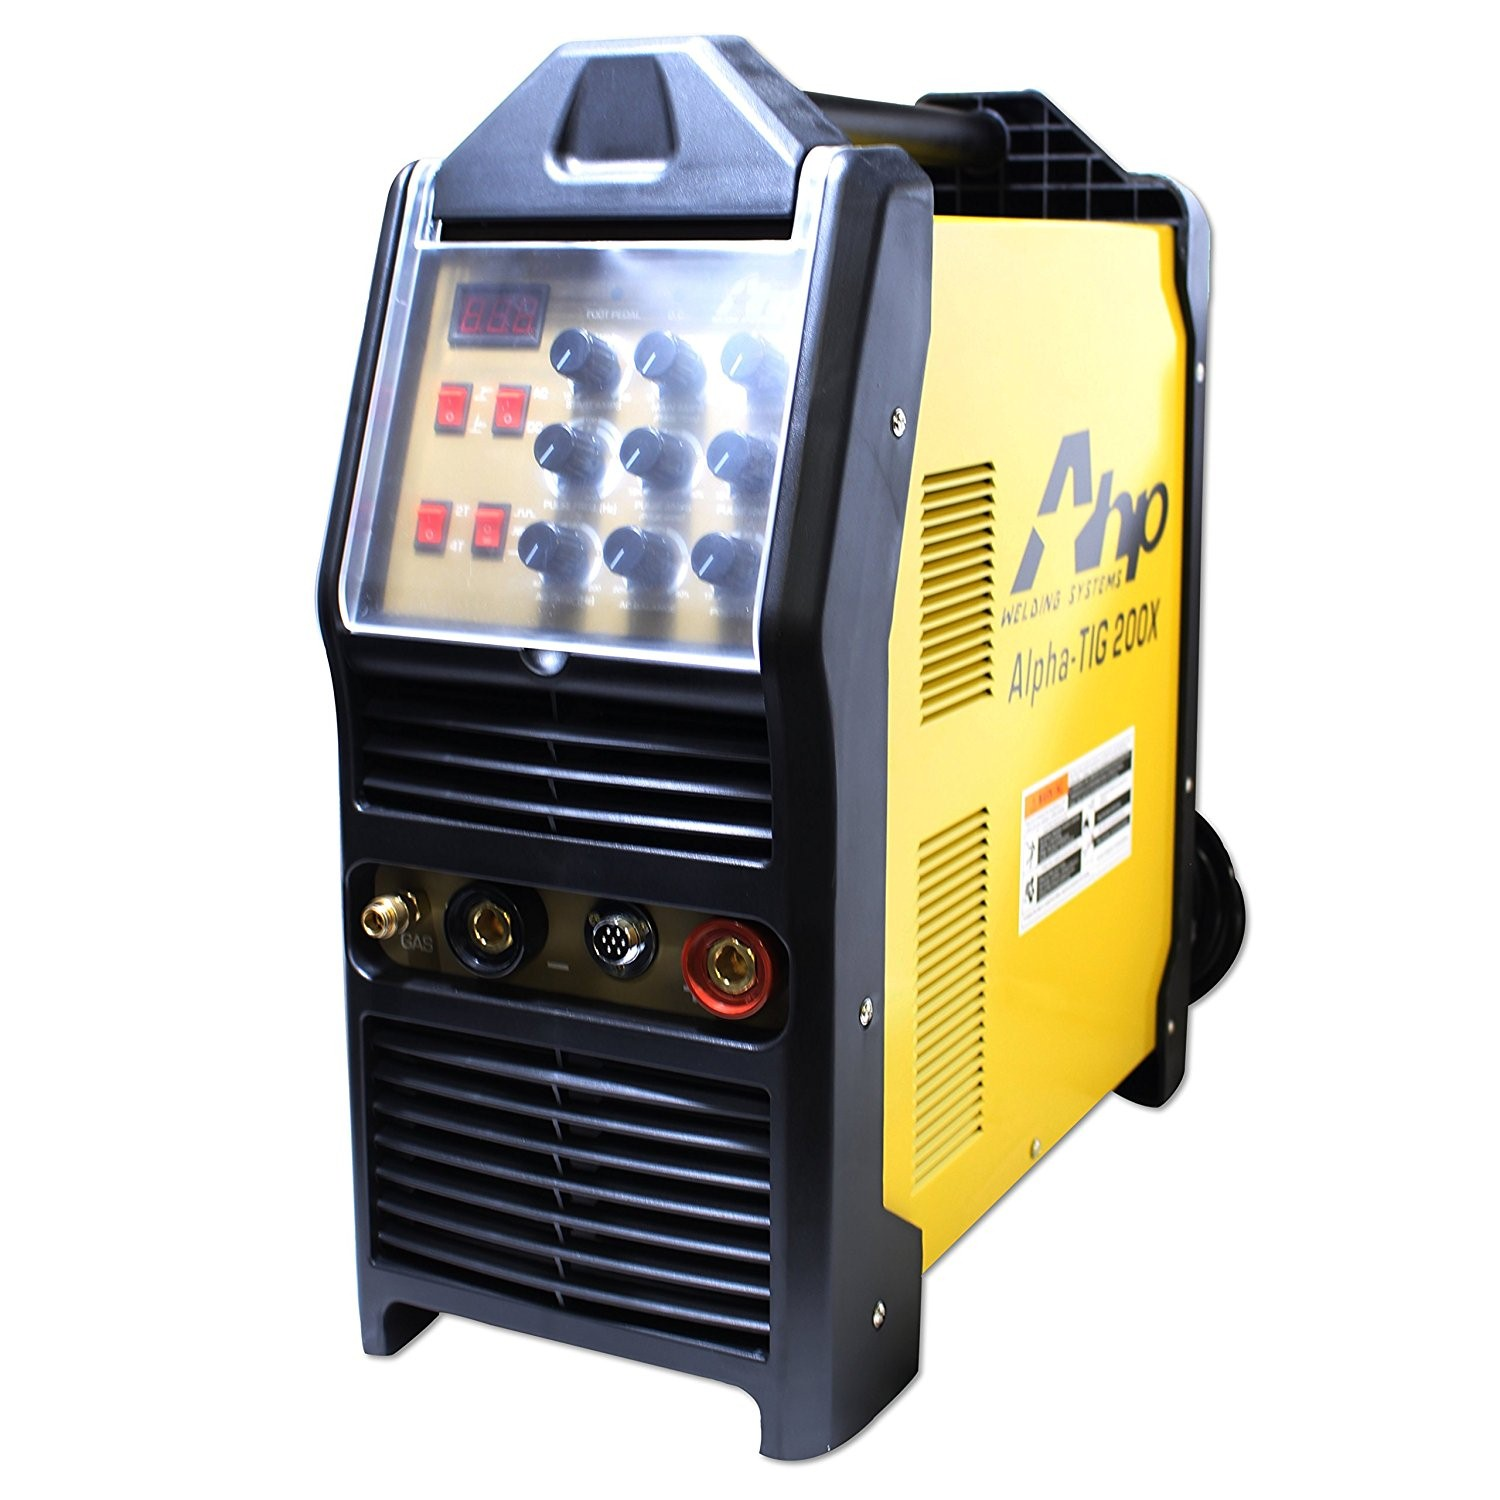 6+ Best TIG Welder for the Money (2019) - Reviews & Buying Guide